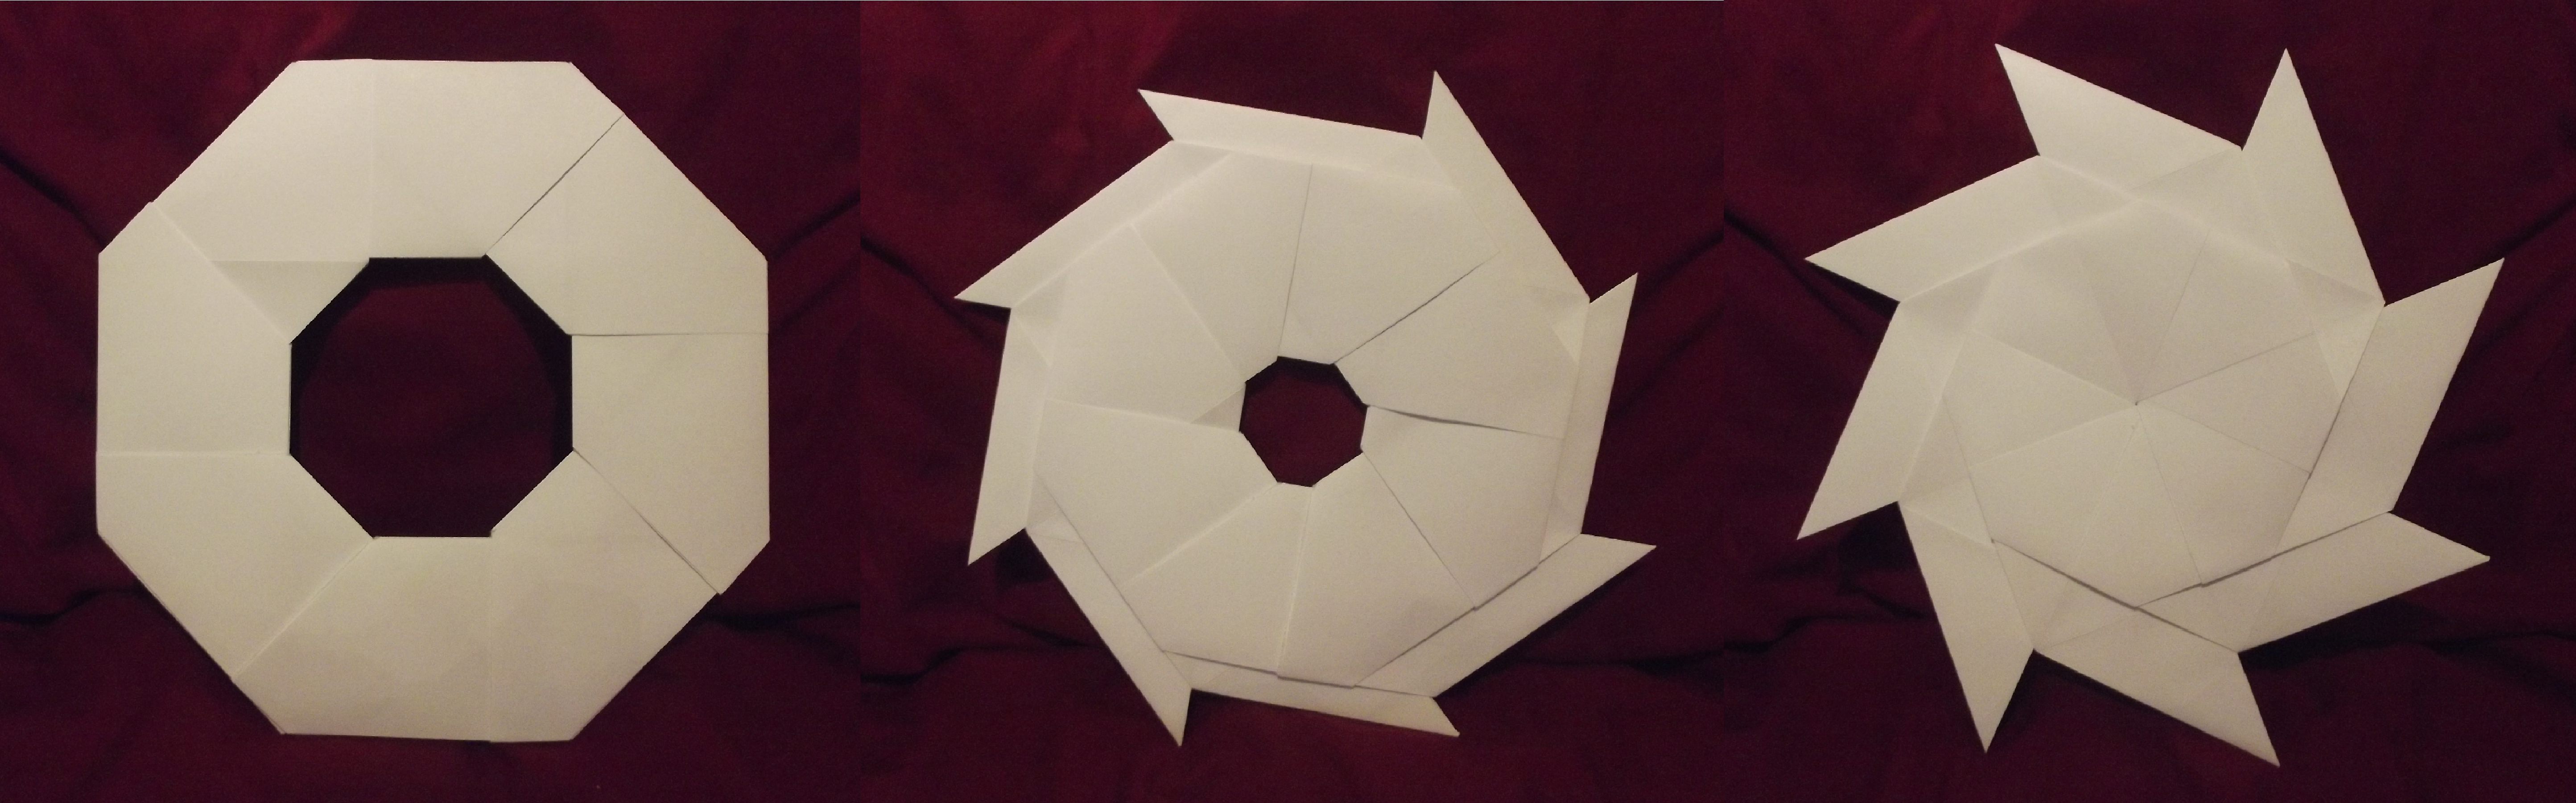 Origami Transforming Ninja Star by ThatAndyGuy95 on DeviantArt - photo#40